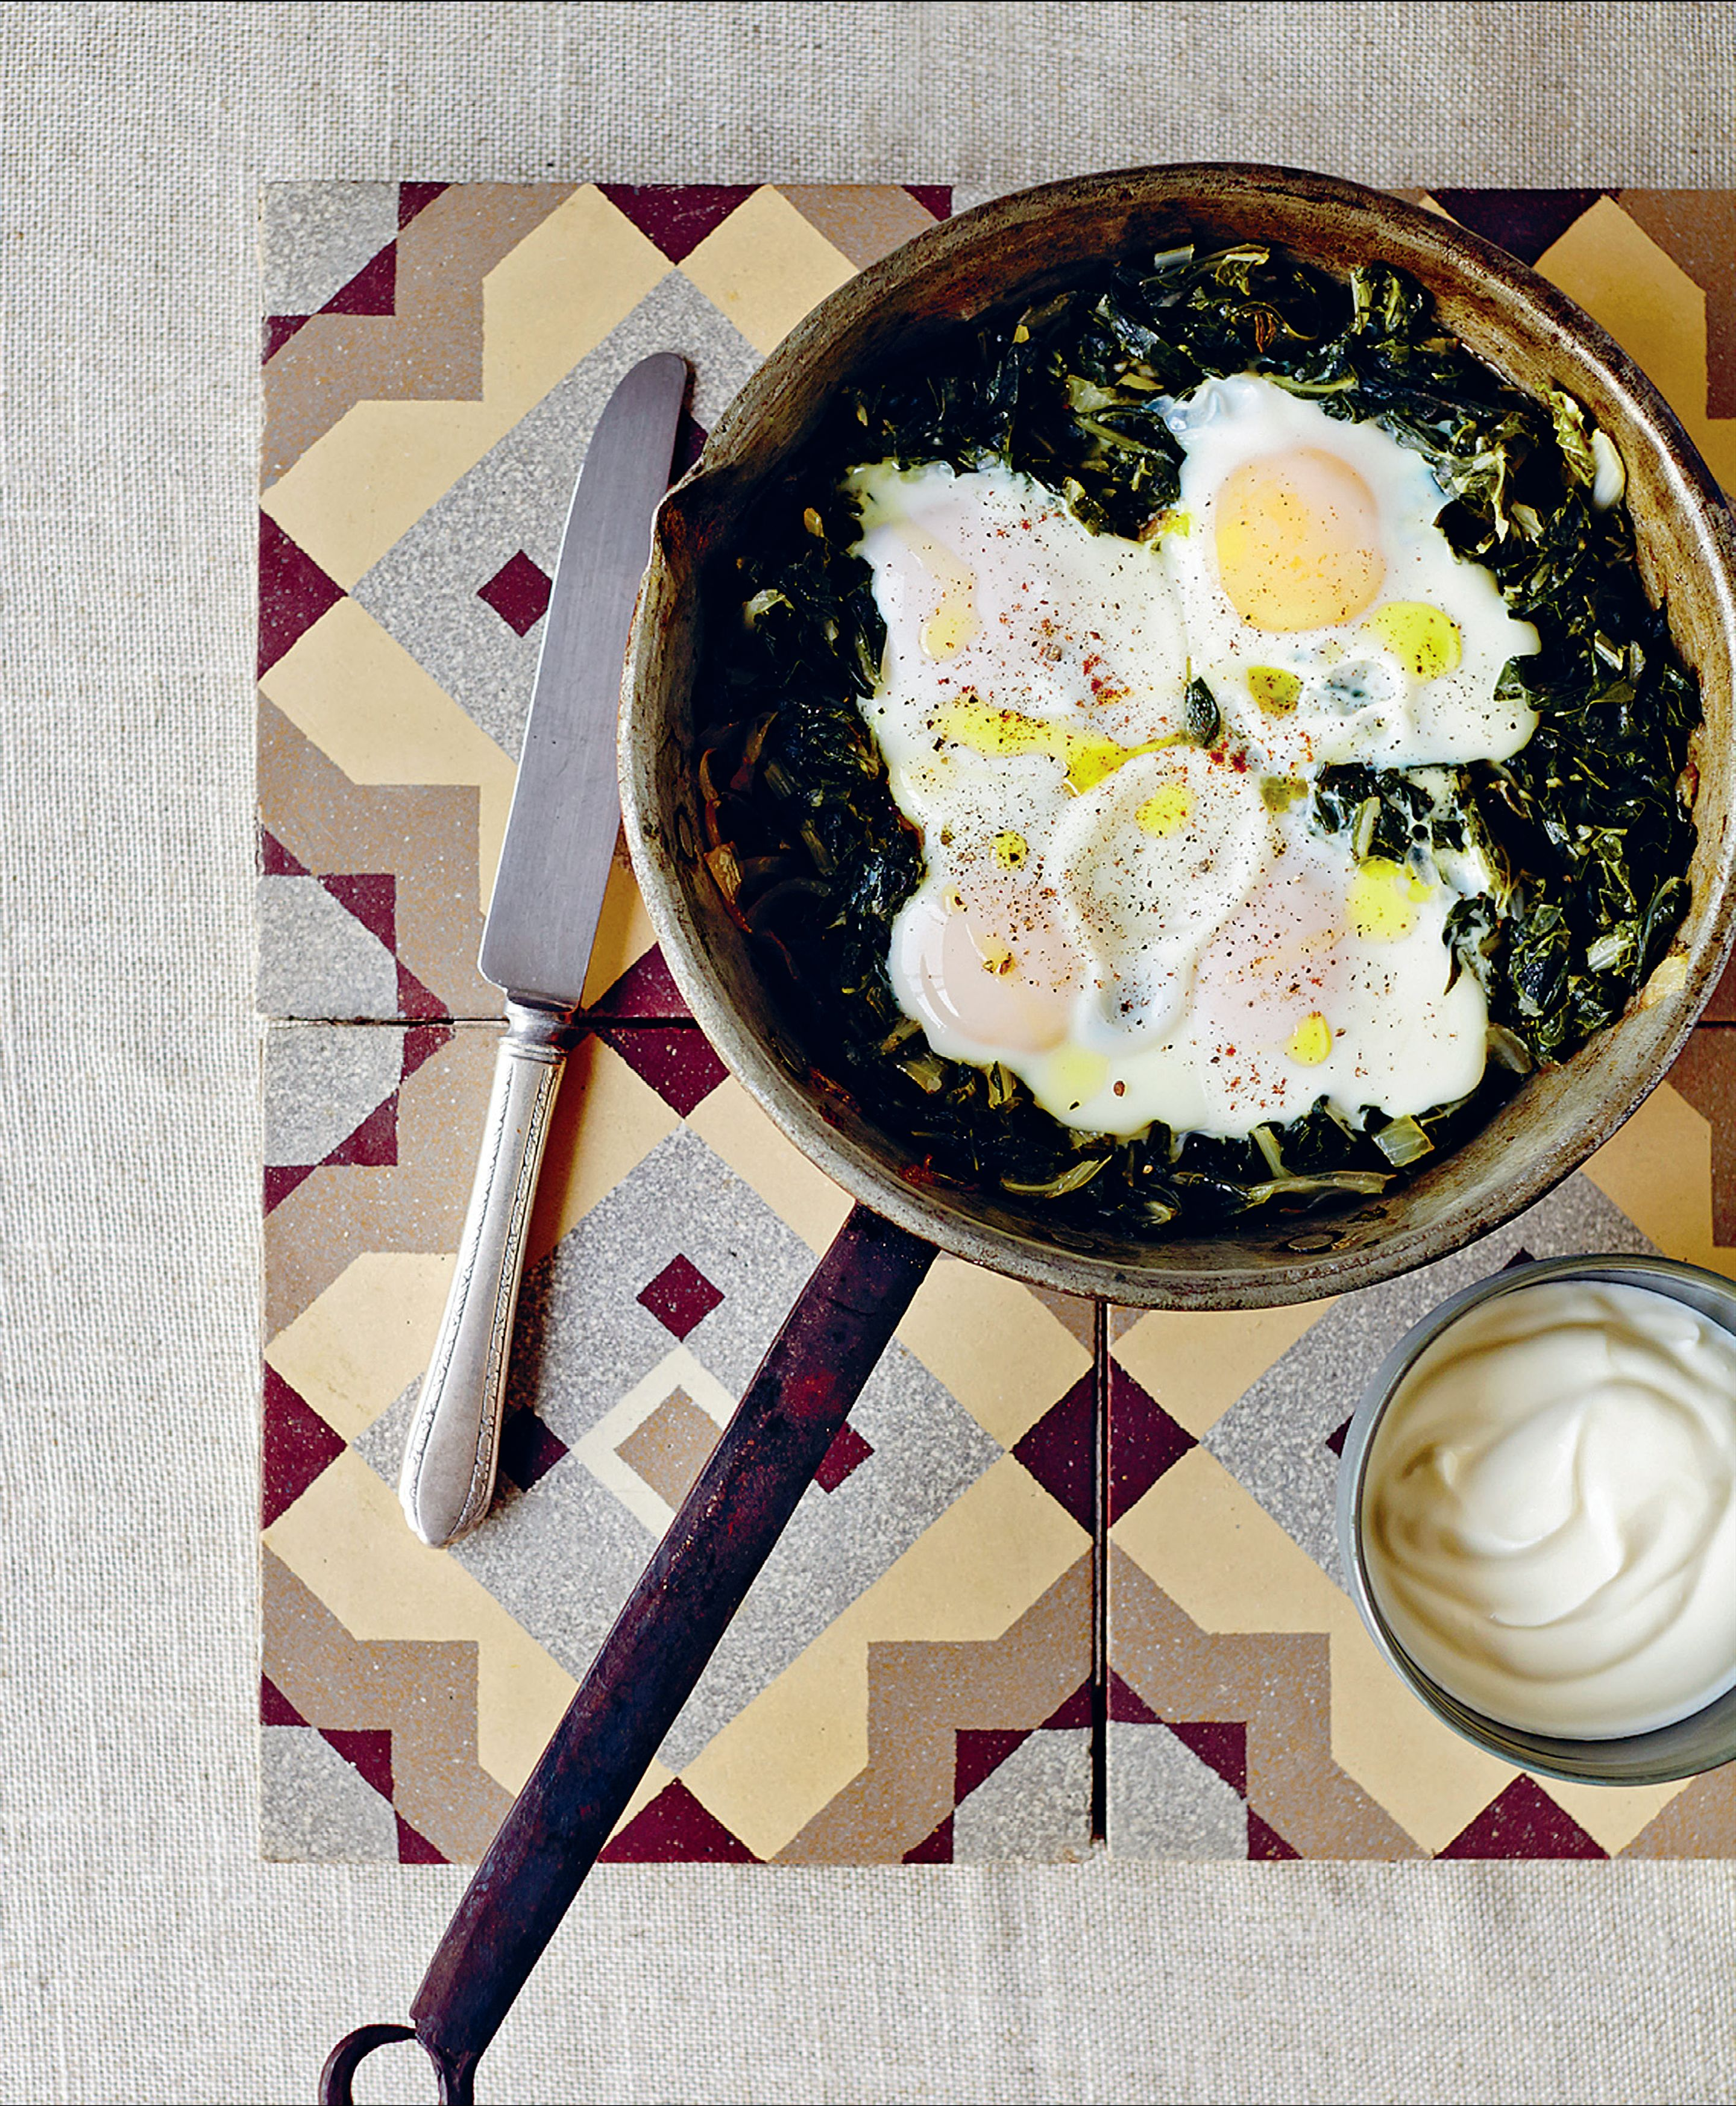 Silverbeet with eggs